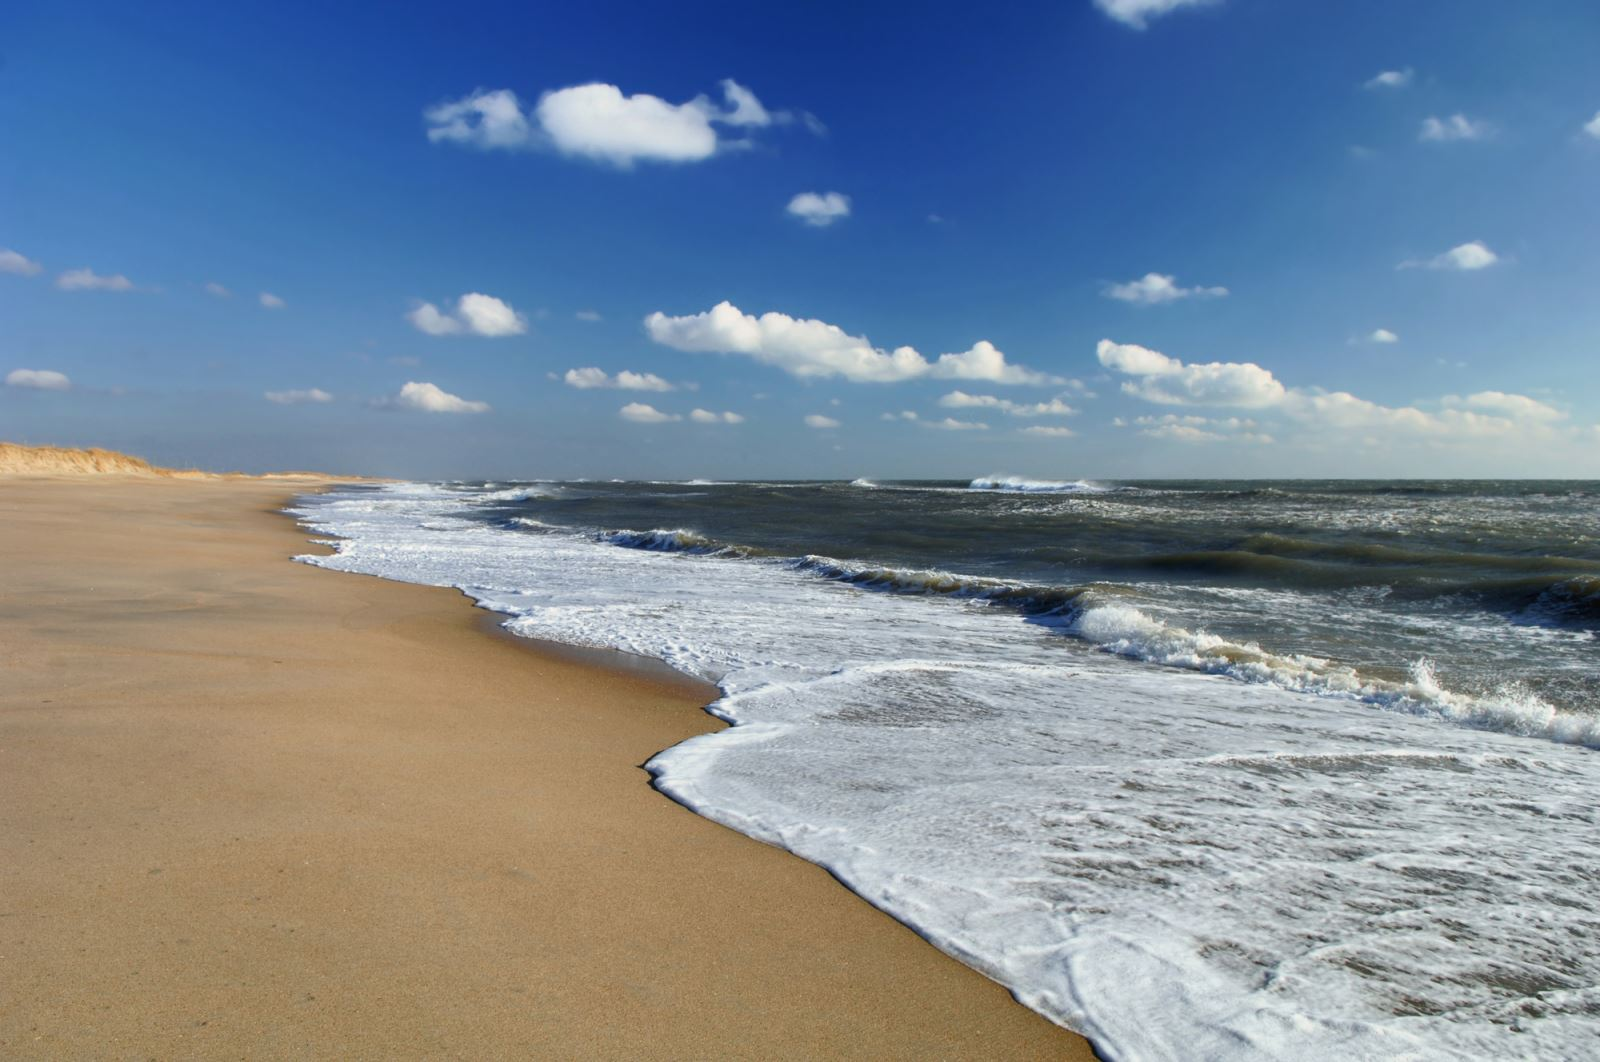 Outer Banks Oceanfront Homes For Sale Holleay Parcker